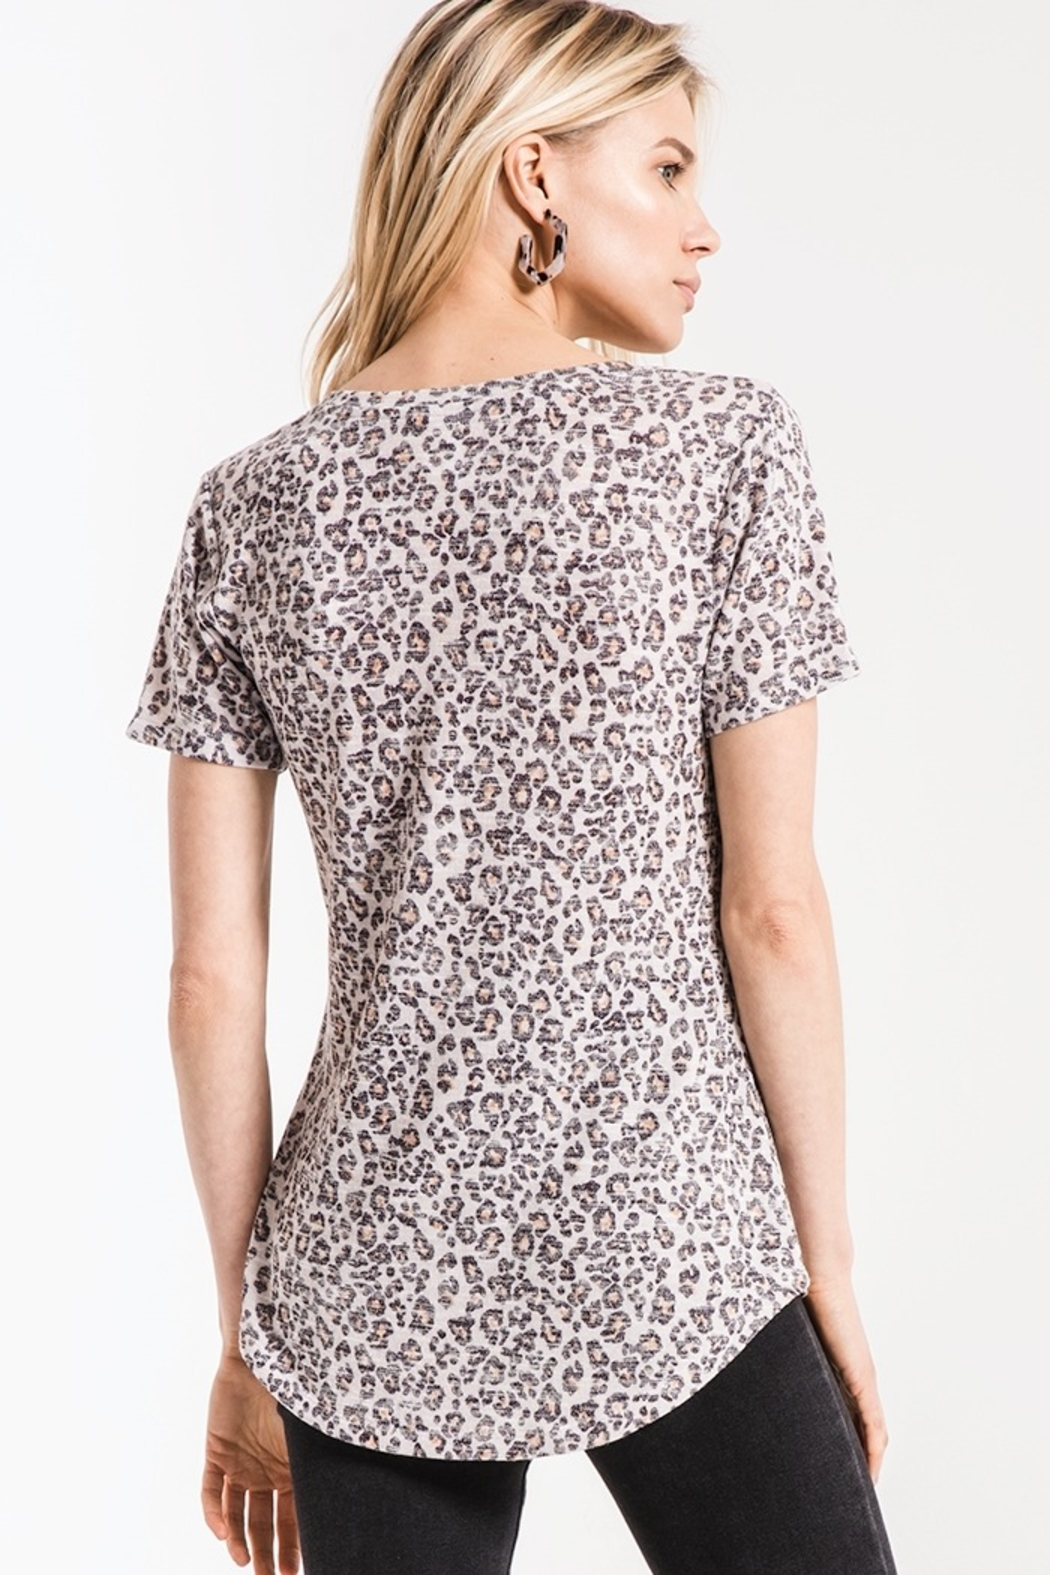 z supply Leopard Vneck Tee - Side Cropped Image